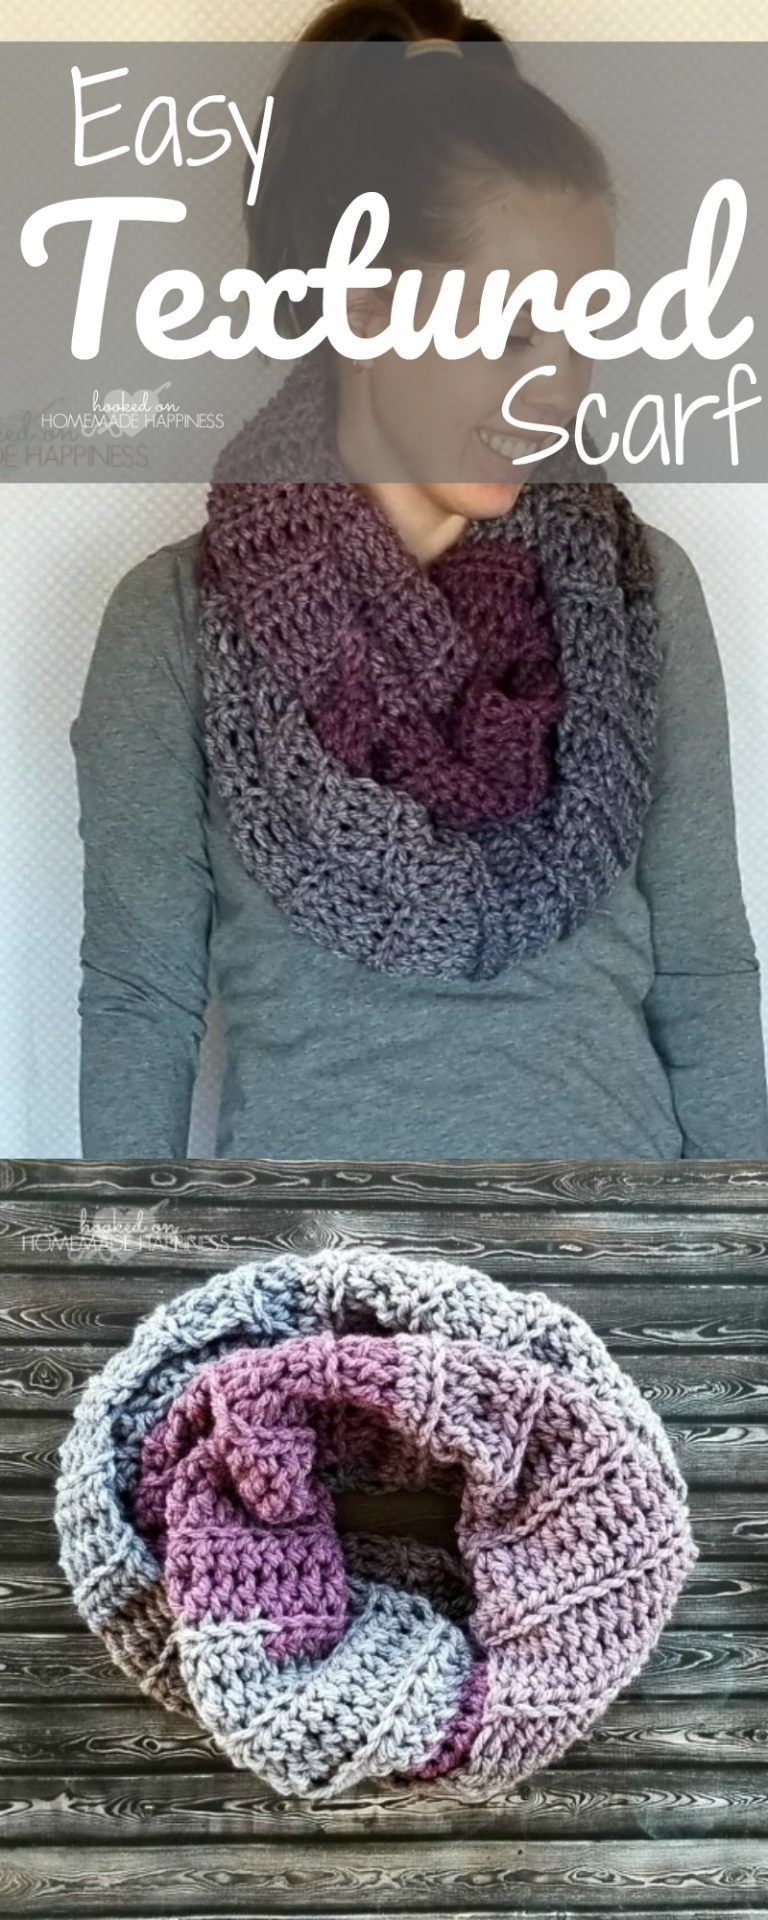 Easy Textured Scarf #crochetscarves